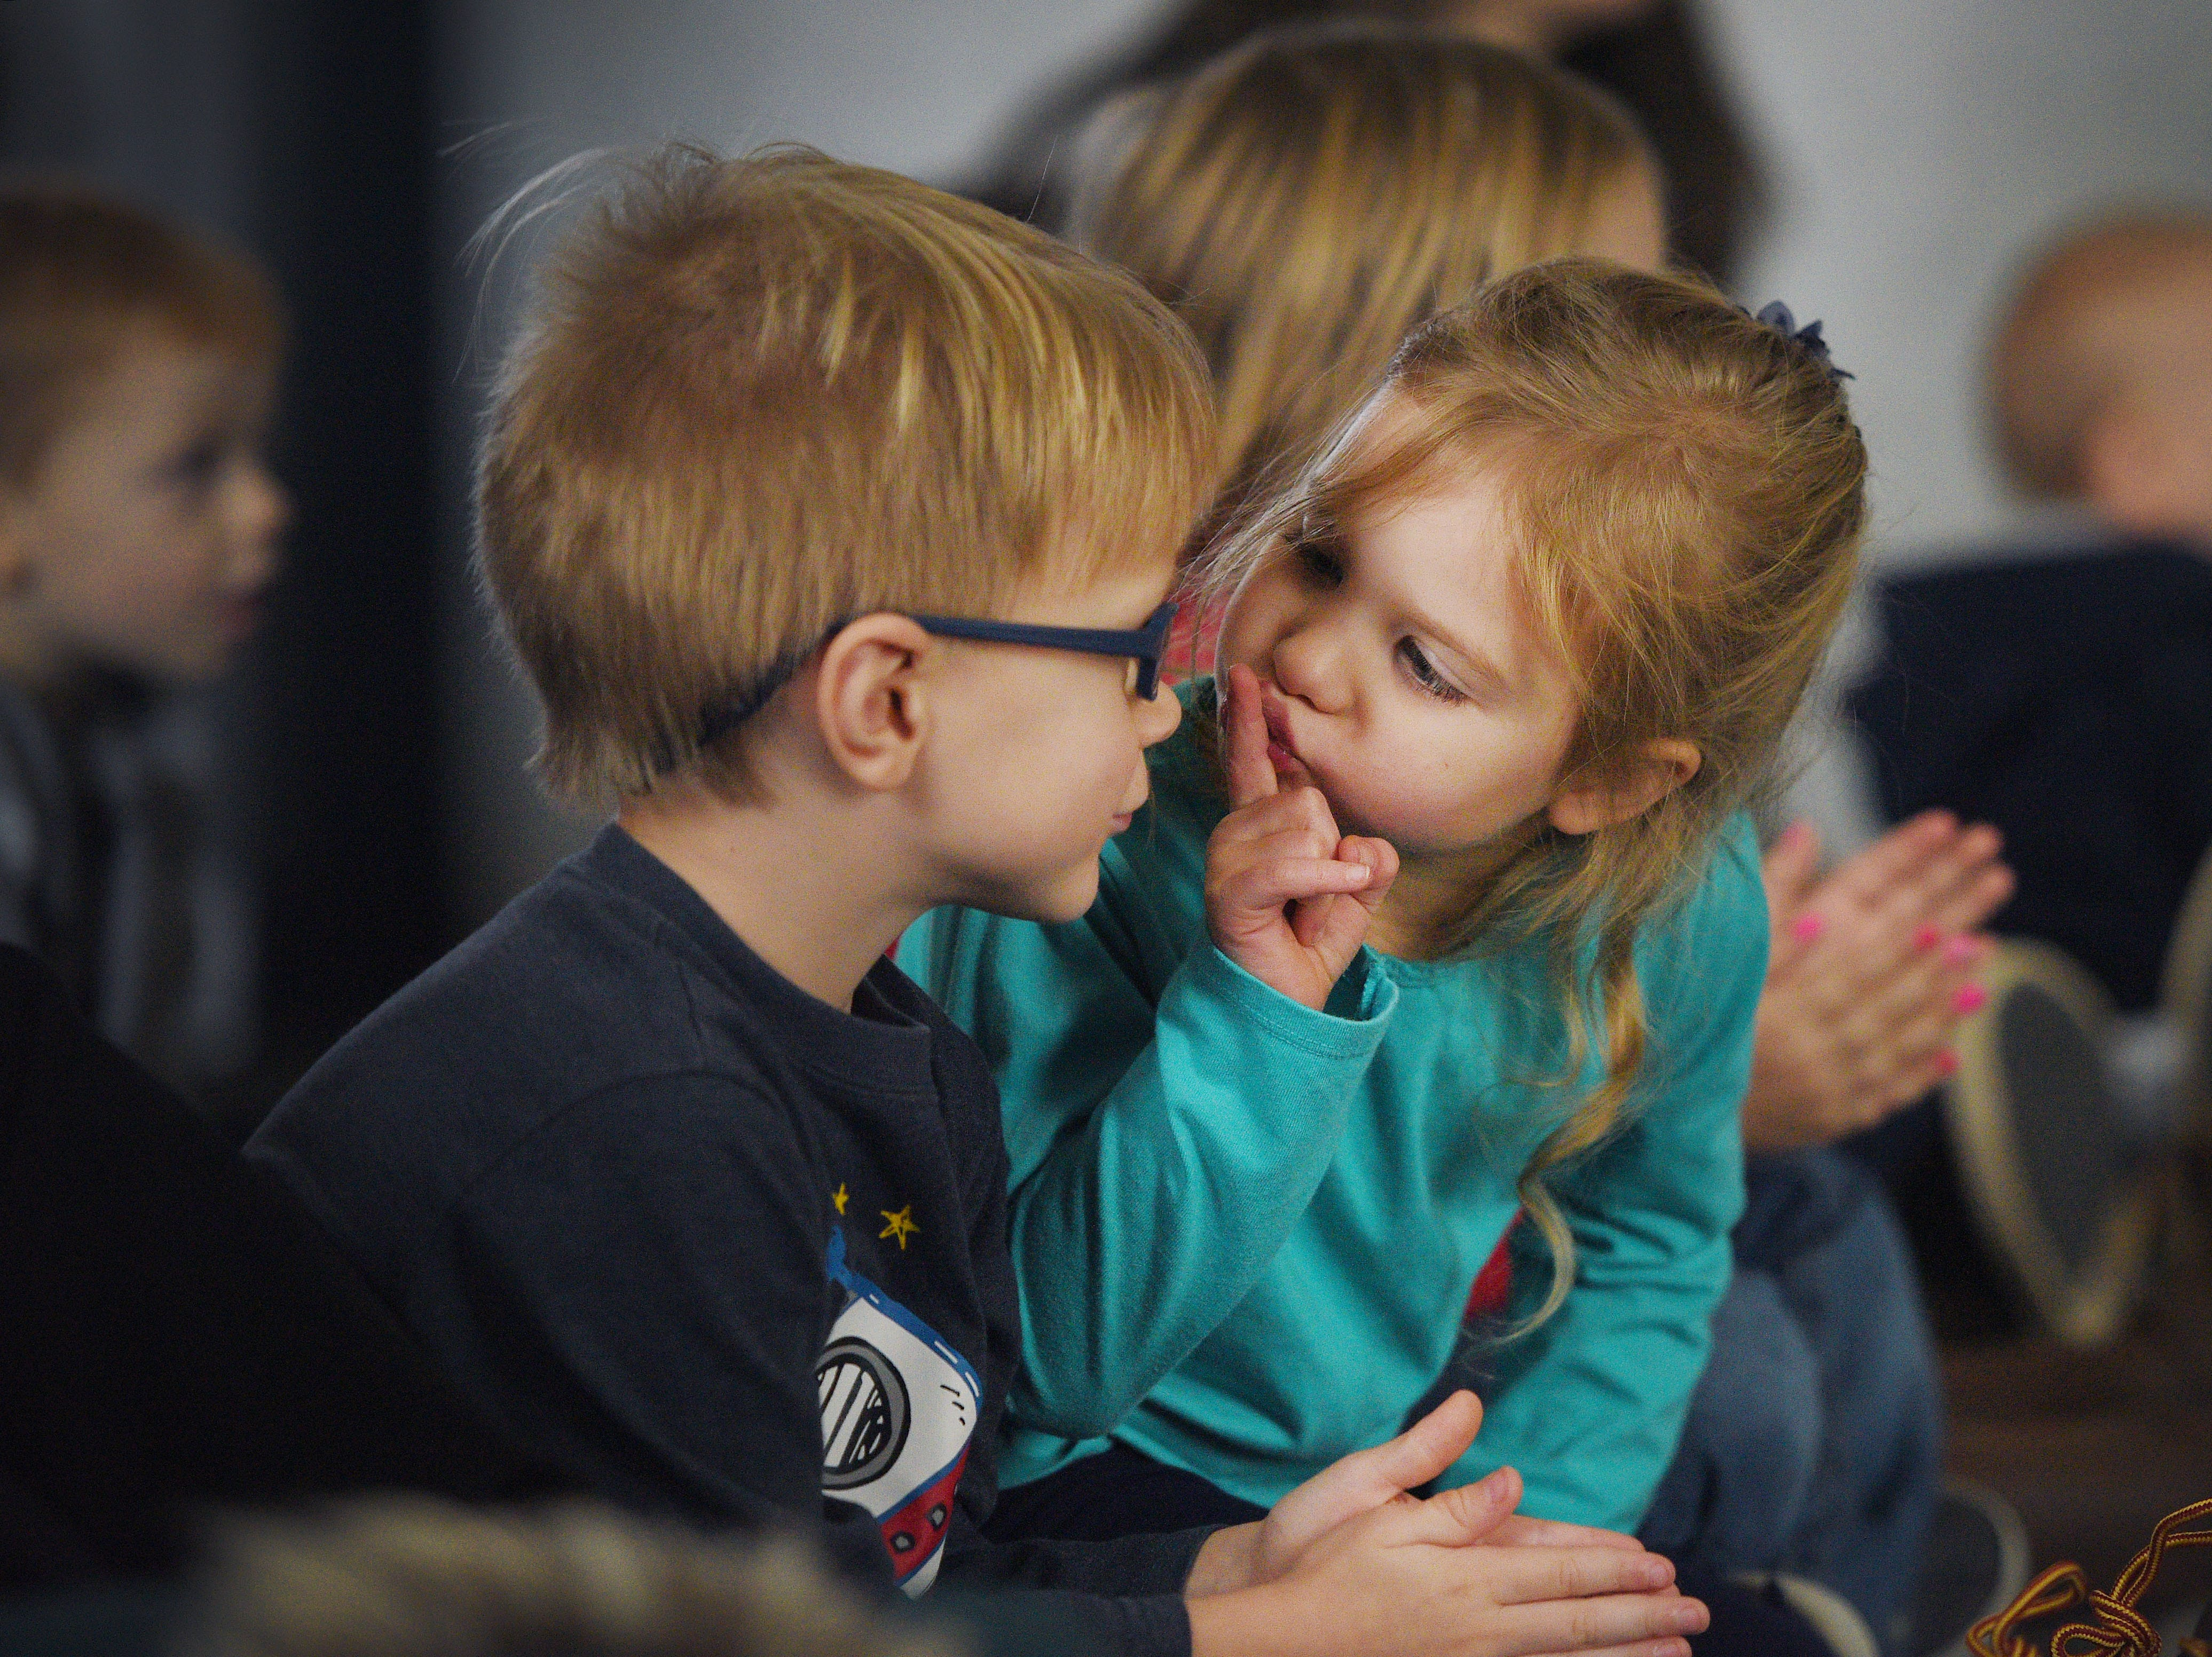 Evelyn Hoesing tells Gavin Dewit to be quiet during The Christmas Gift puppet show at the Prairie West Branch Wednesday, Dec. 5, in Sioux Falls.